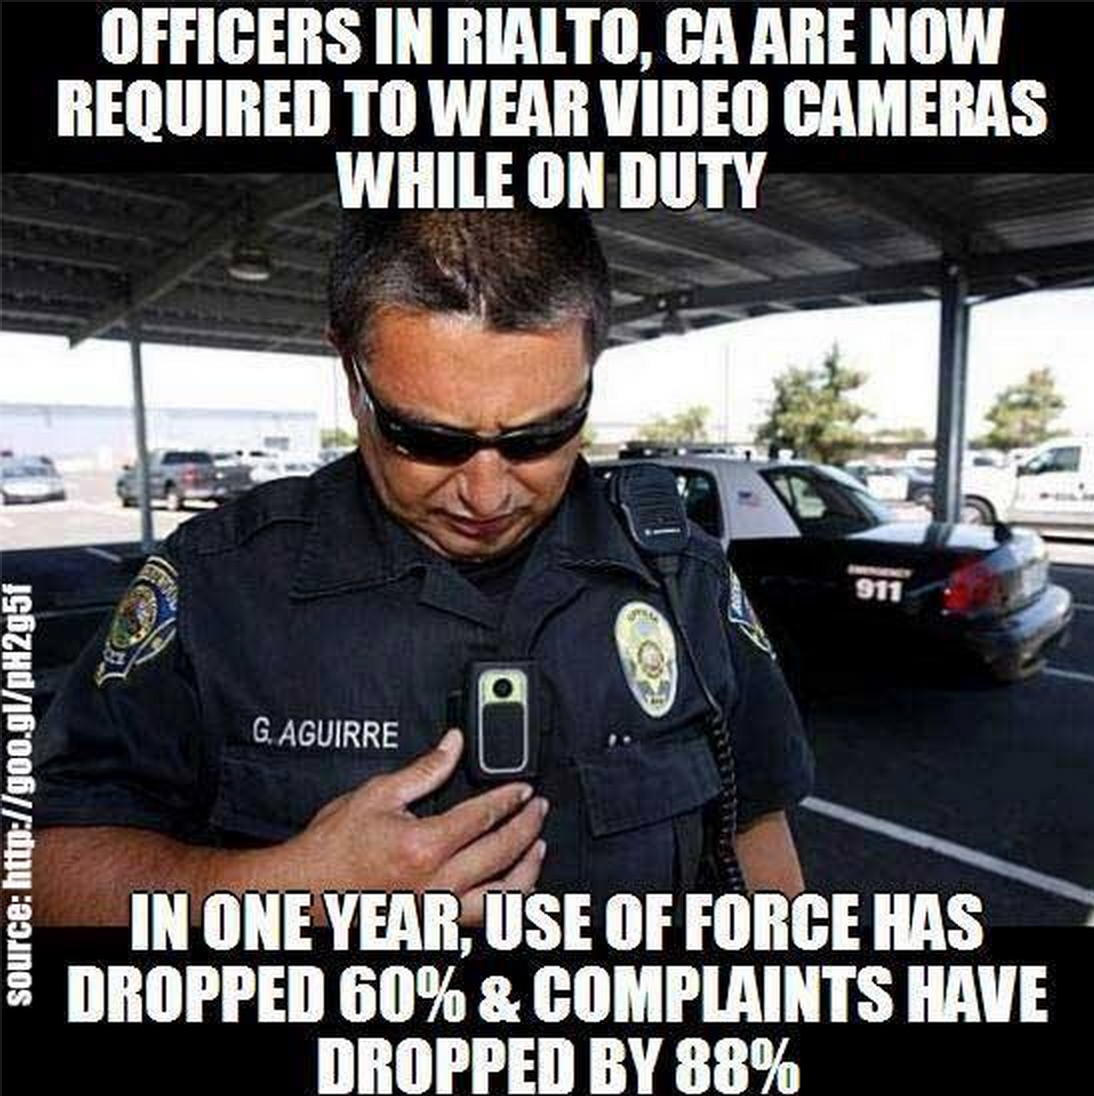 Use of force in California city has dropped 60% due to cops wearing cameras